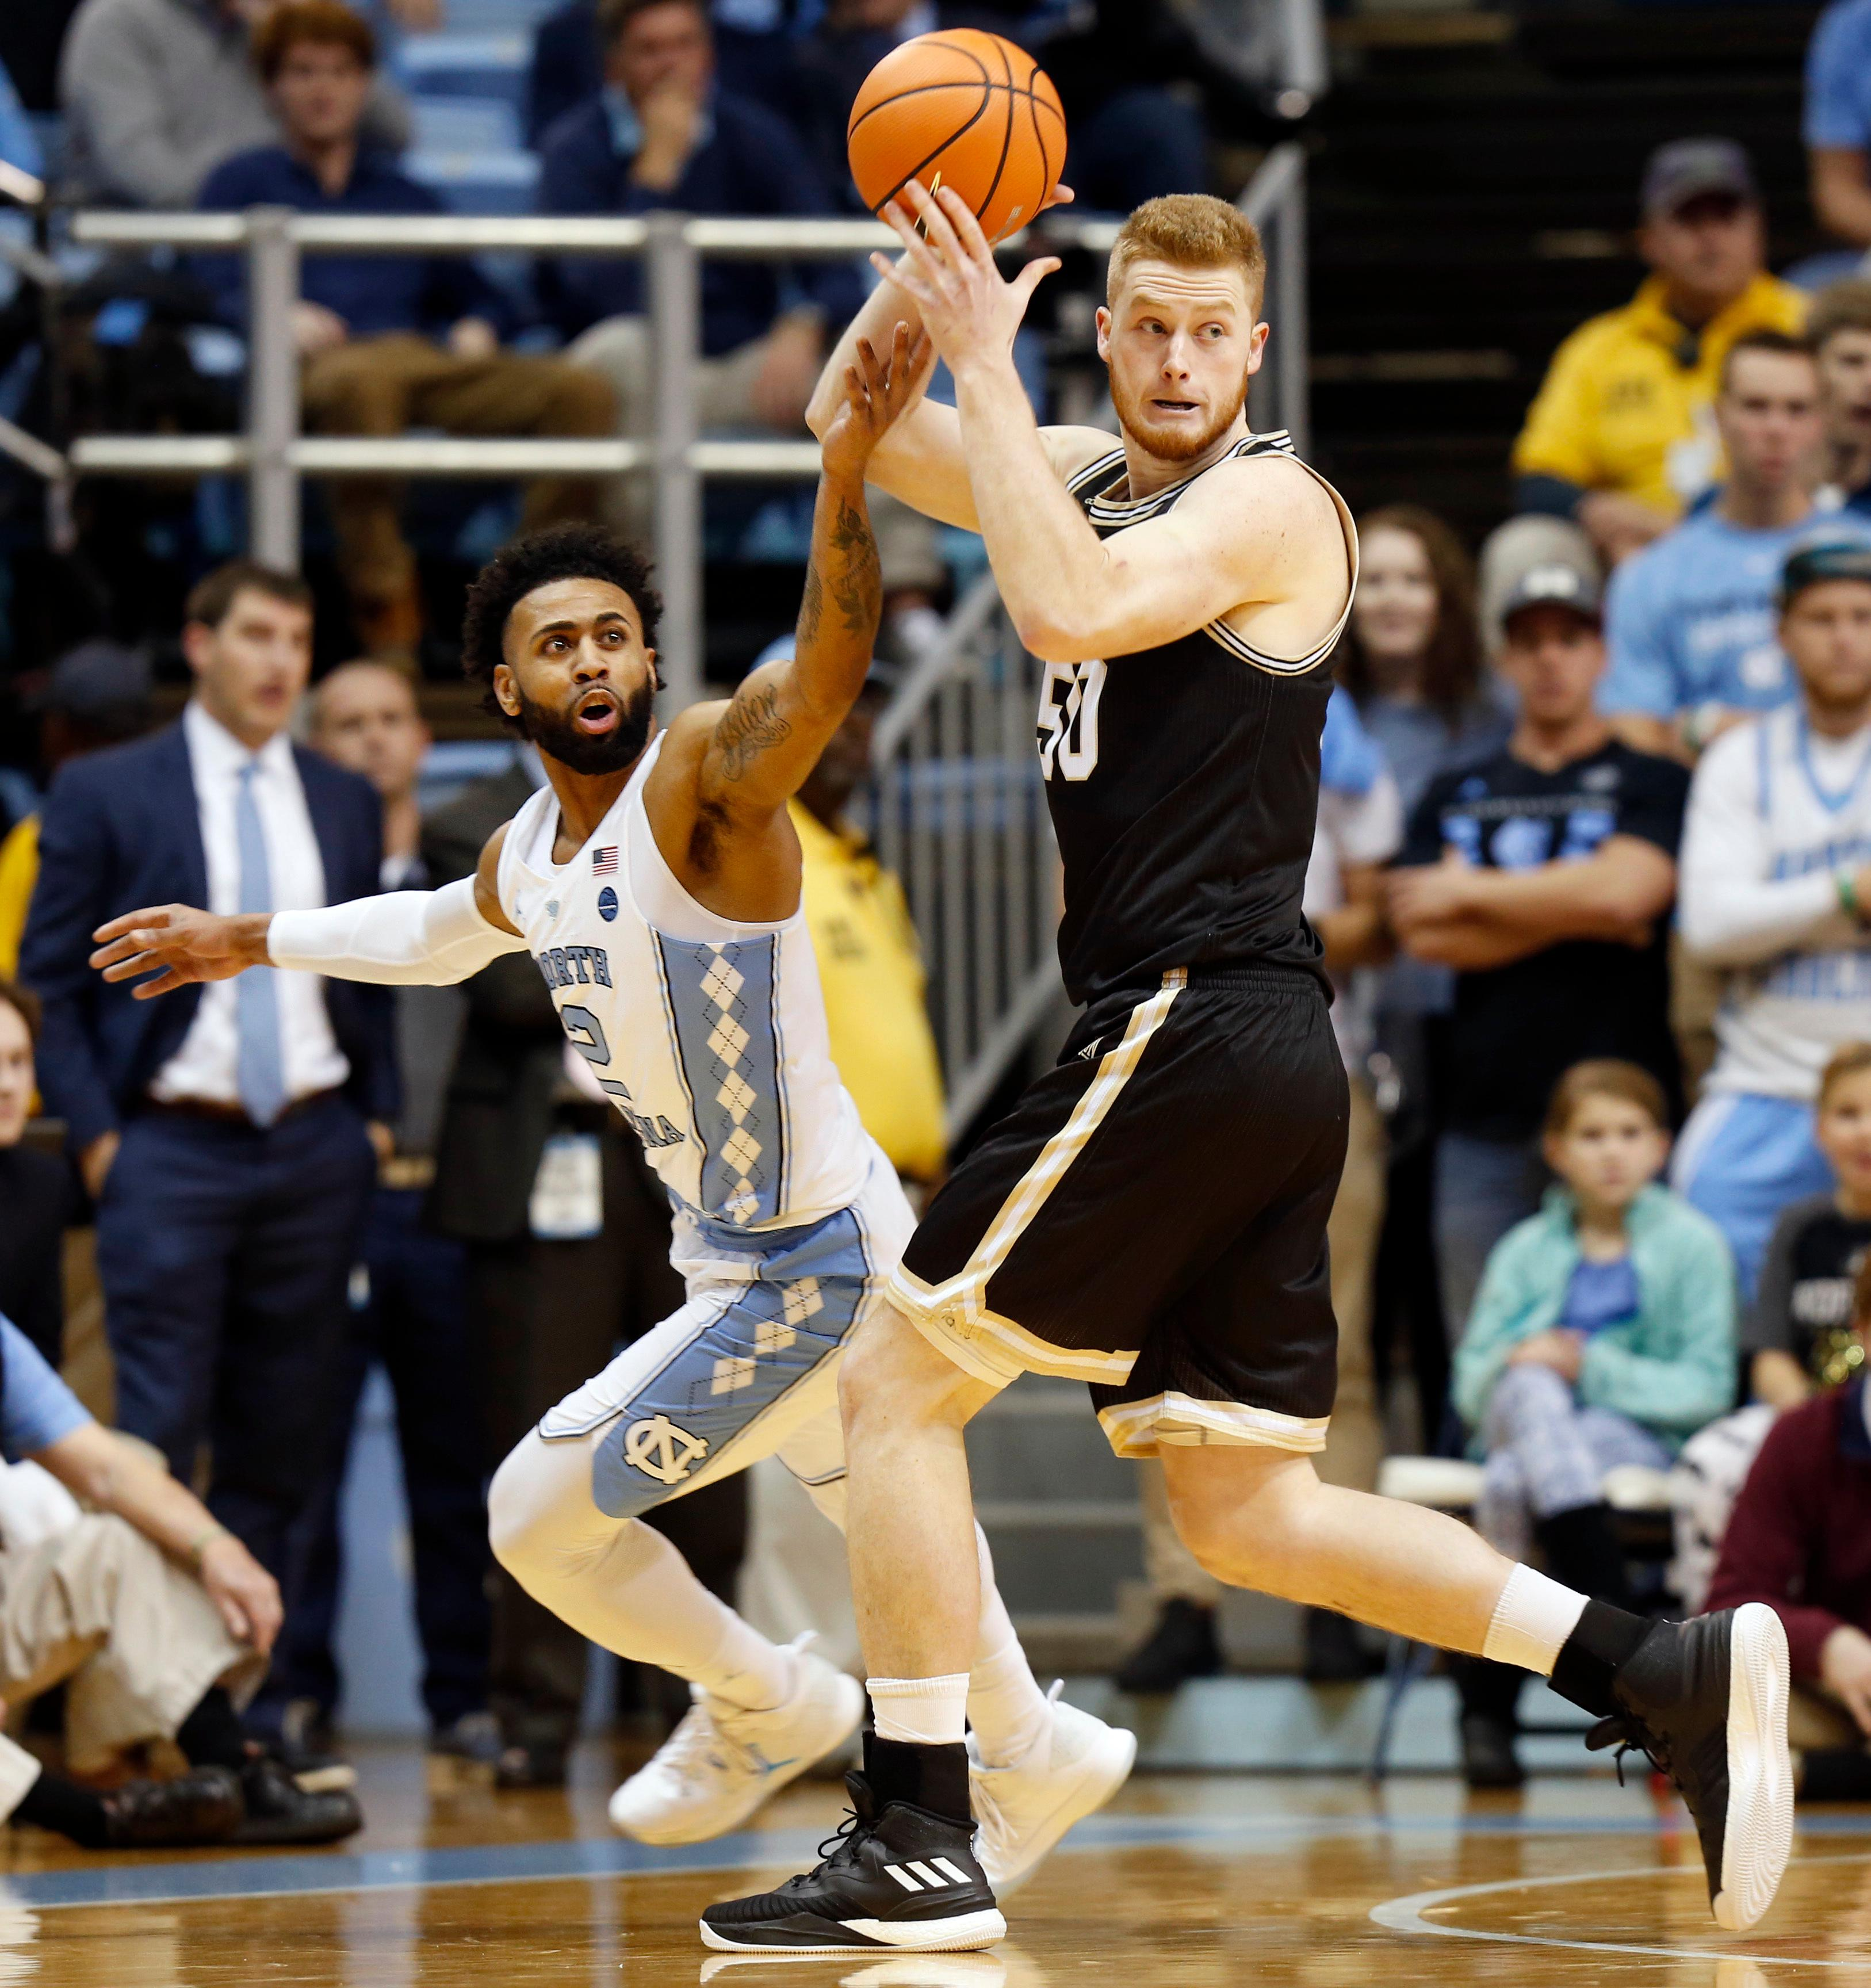 North Carolina Tar Heels guard Joel Berry II, left, battles Wofford Terriers center Matthew Pegram for the ball during the first half of an NCAA college basketball game in Chapel Hill, N.C., Wednesday, Dec. 20, 2017. (AP Photo/Ellen Ozier)